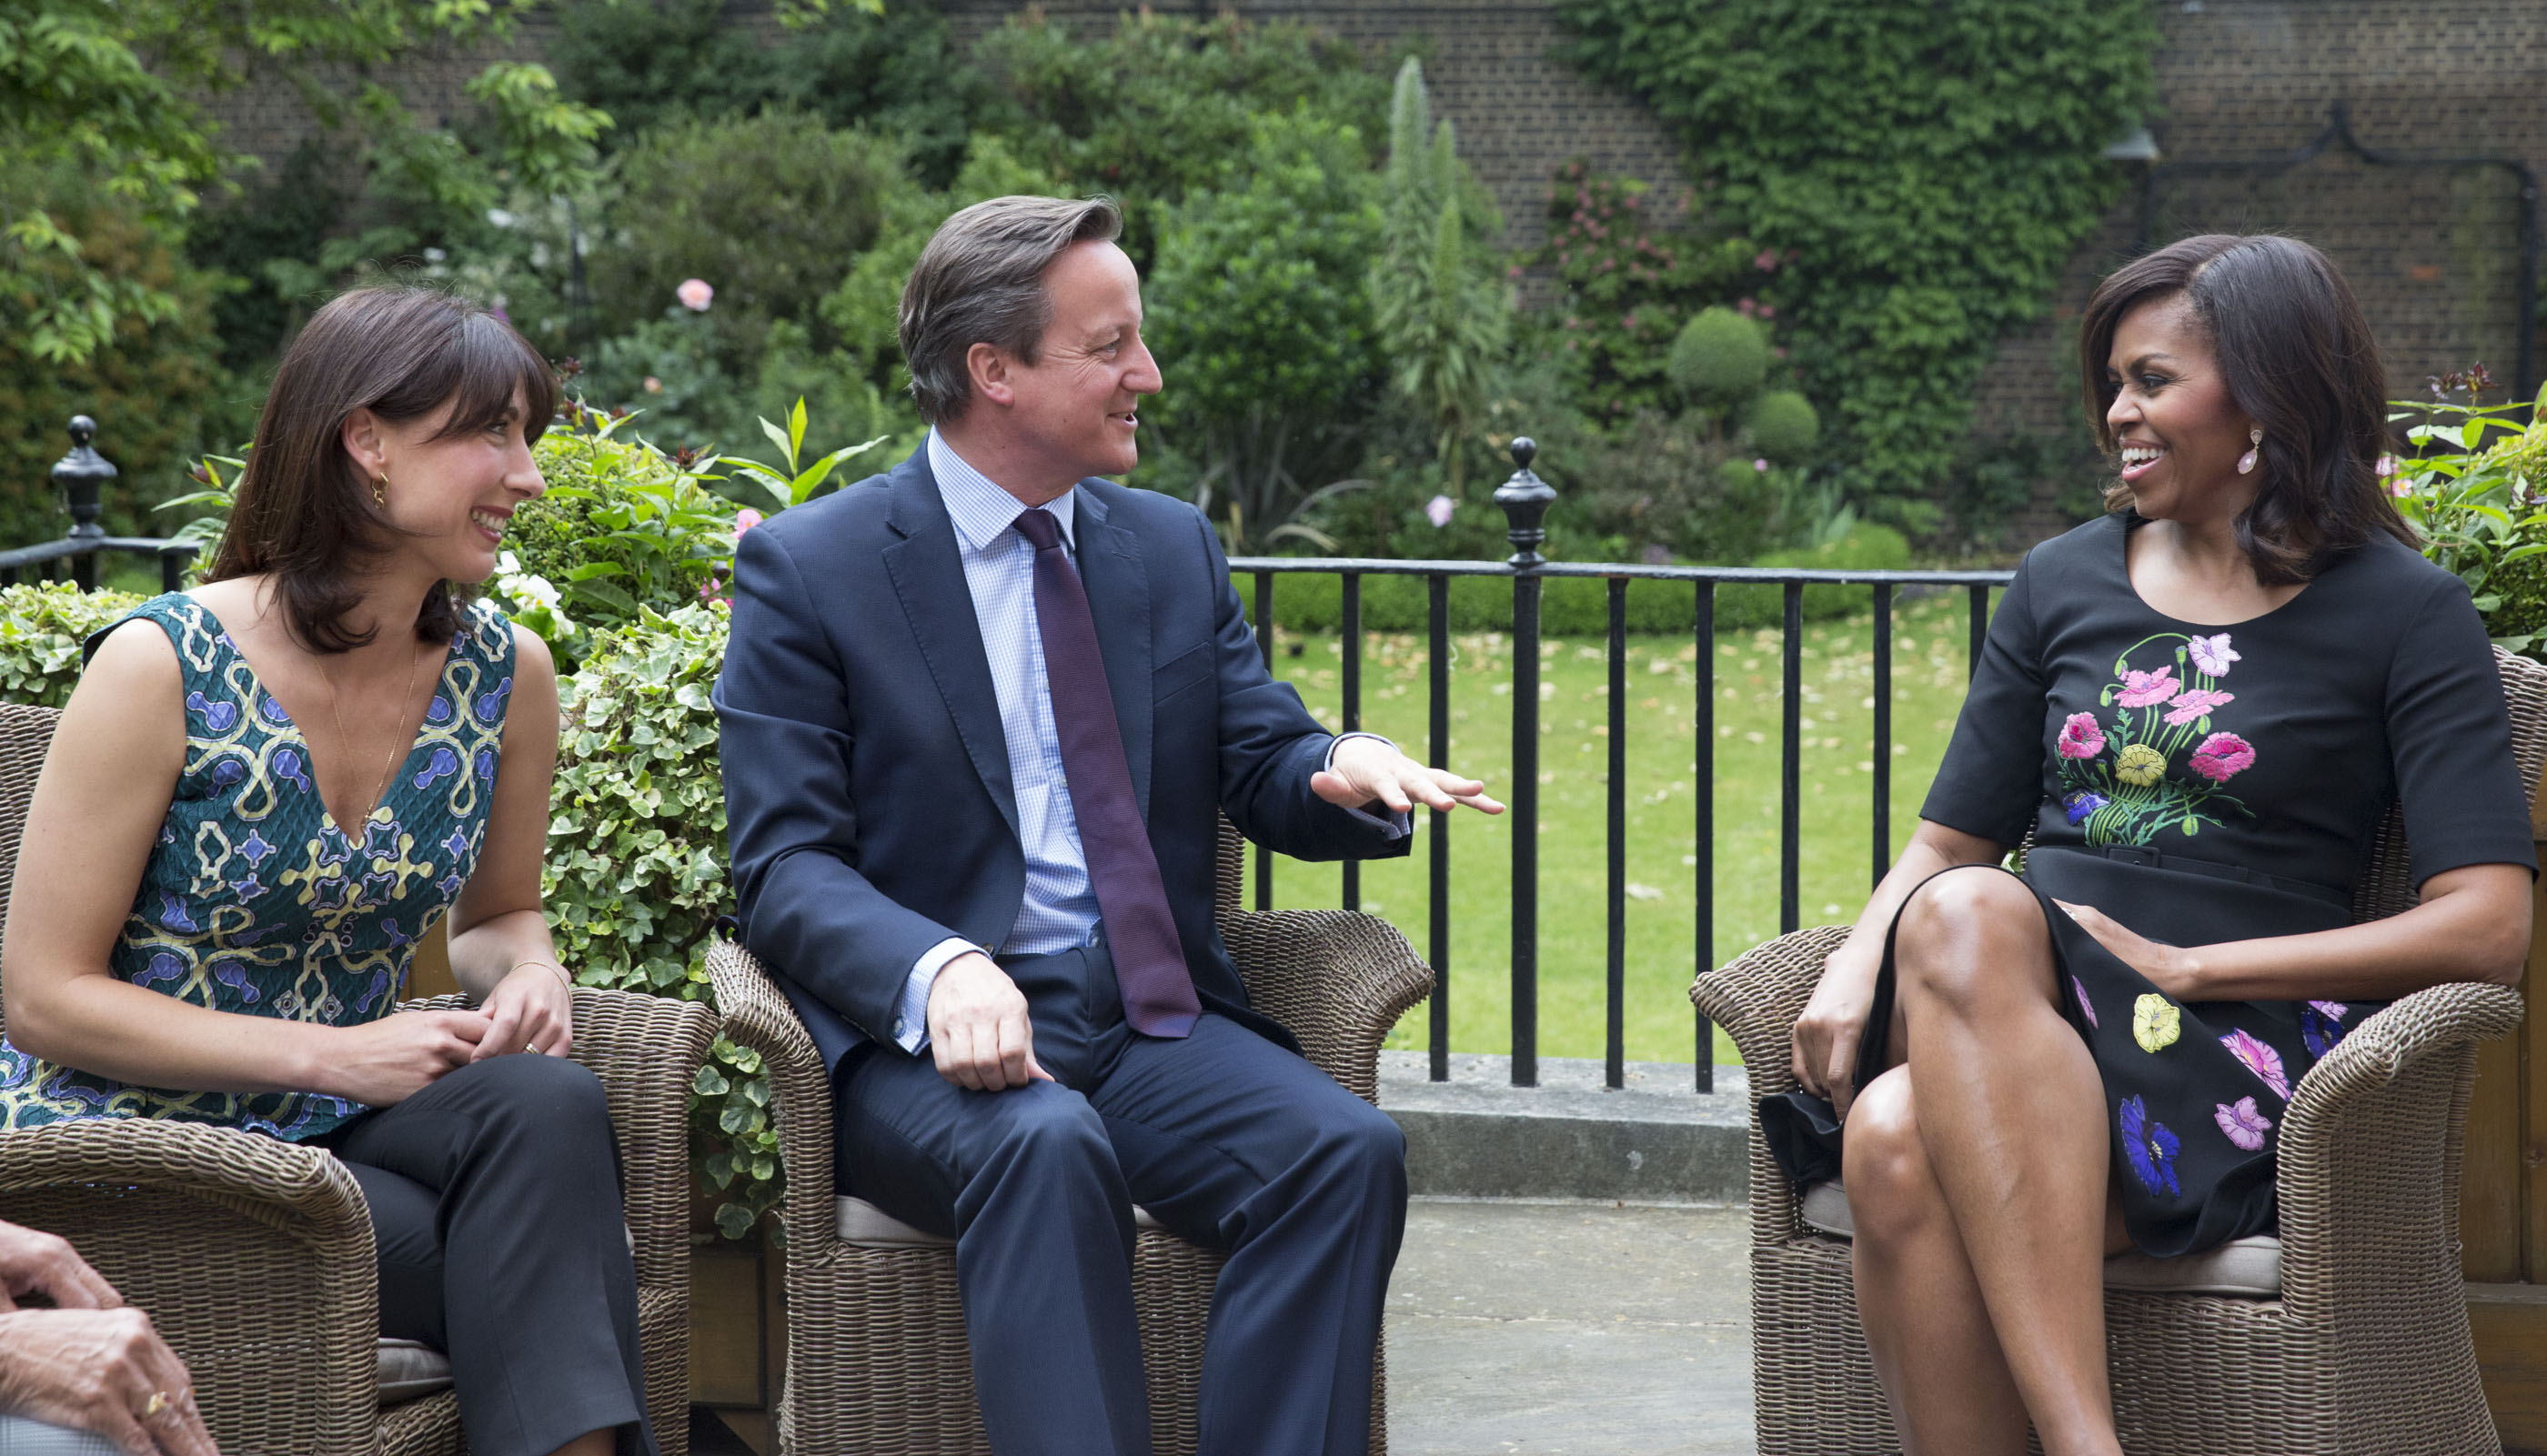 The First Lady Meets with Prime Minister Cameron